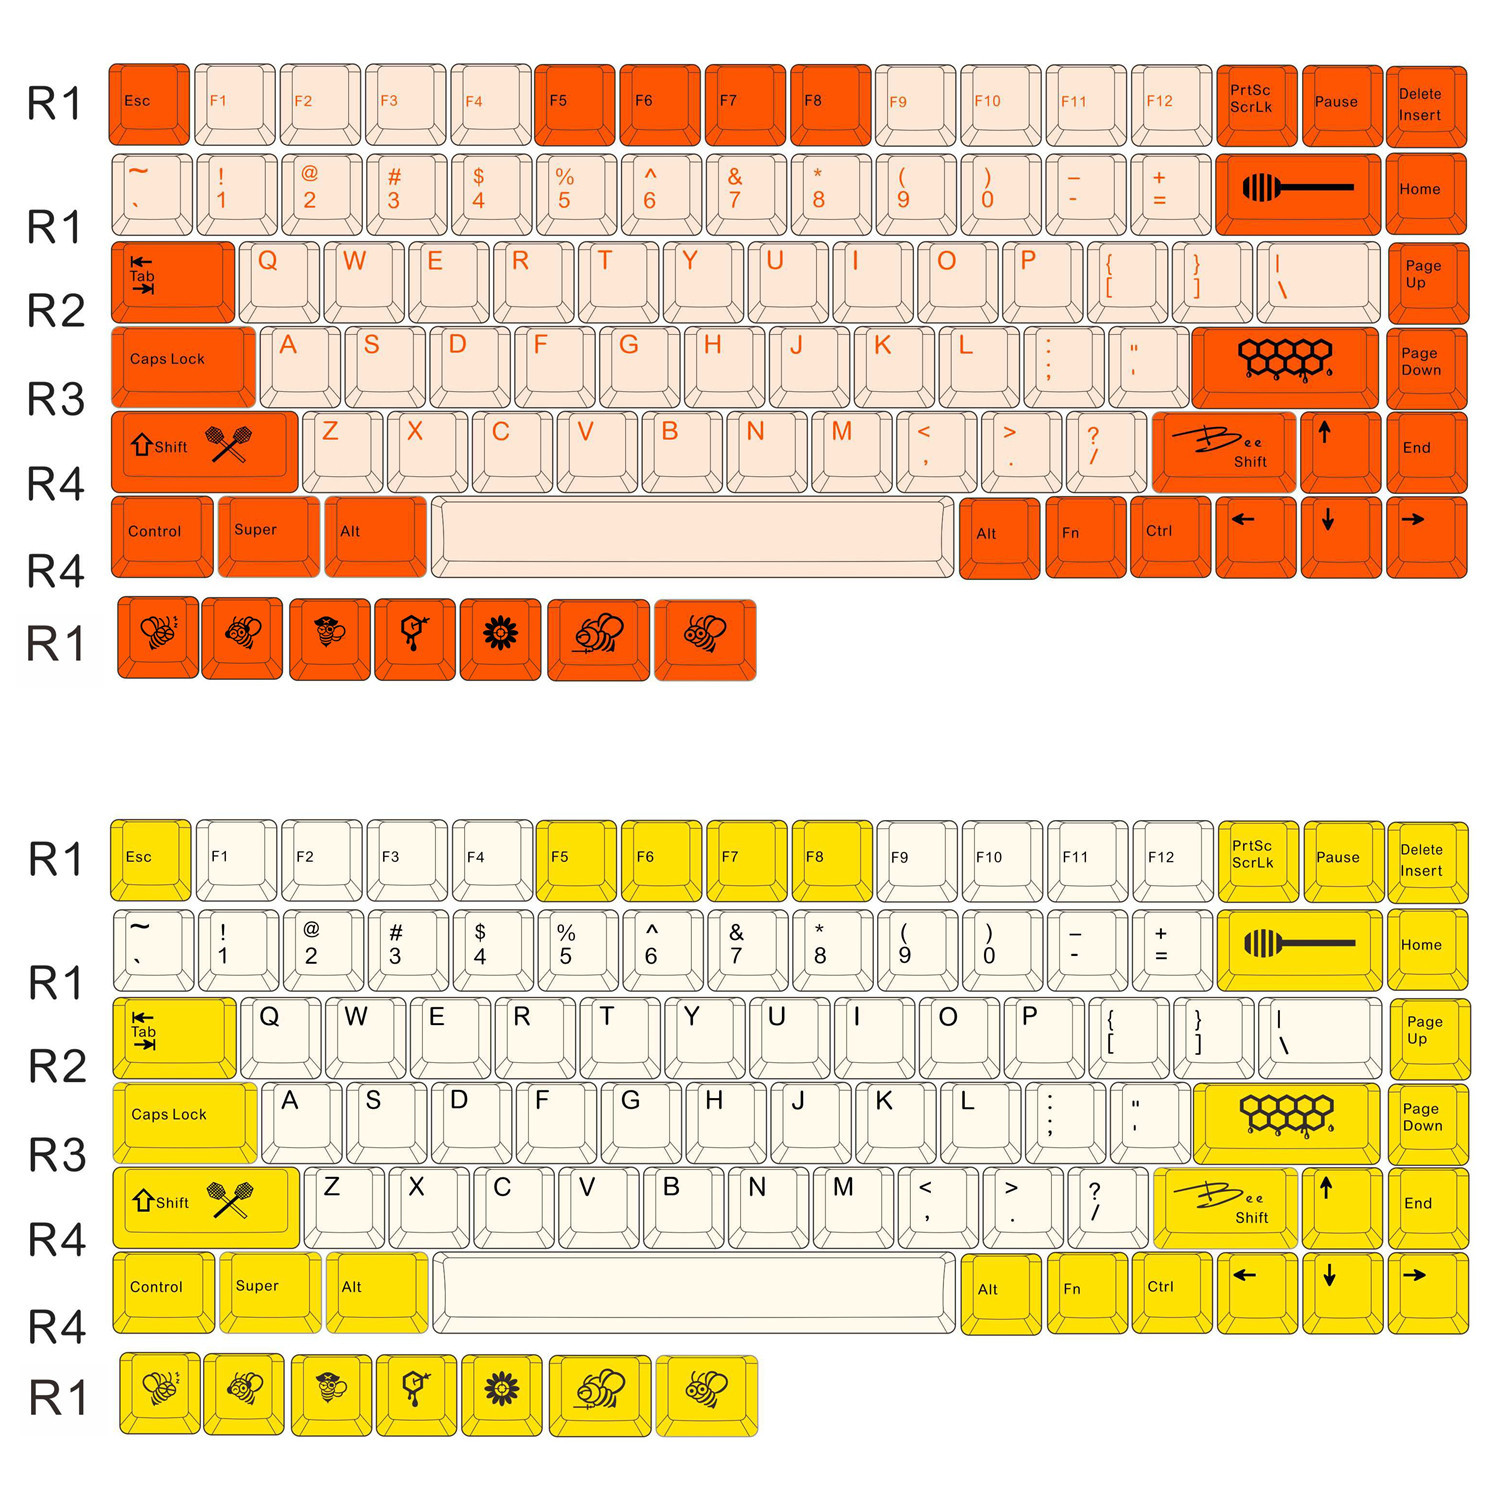 <font><b>84</b></font> keys Bee/Carbon PBT dye sublimation key caps Cherry profile <font><b>keycap</b></font> for <font><b>keycool</b></font> <font><b>84</b></font> mechanical keyboard with additional keys image